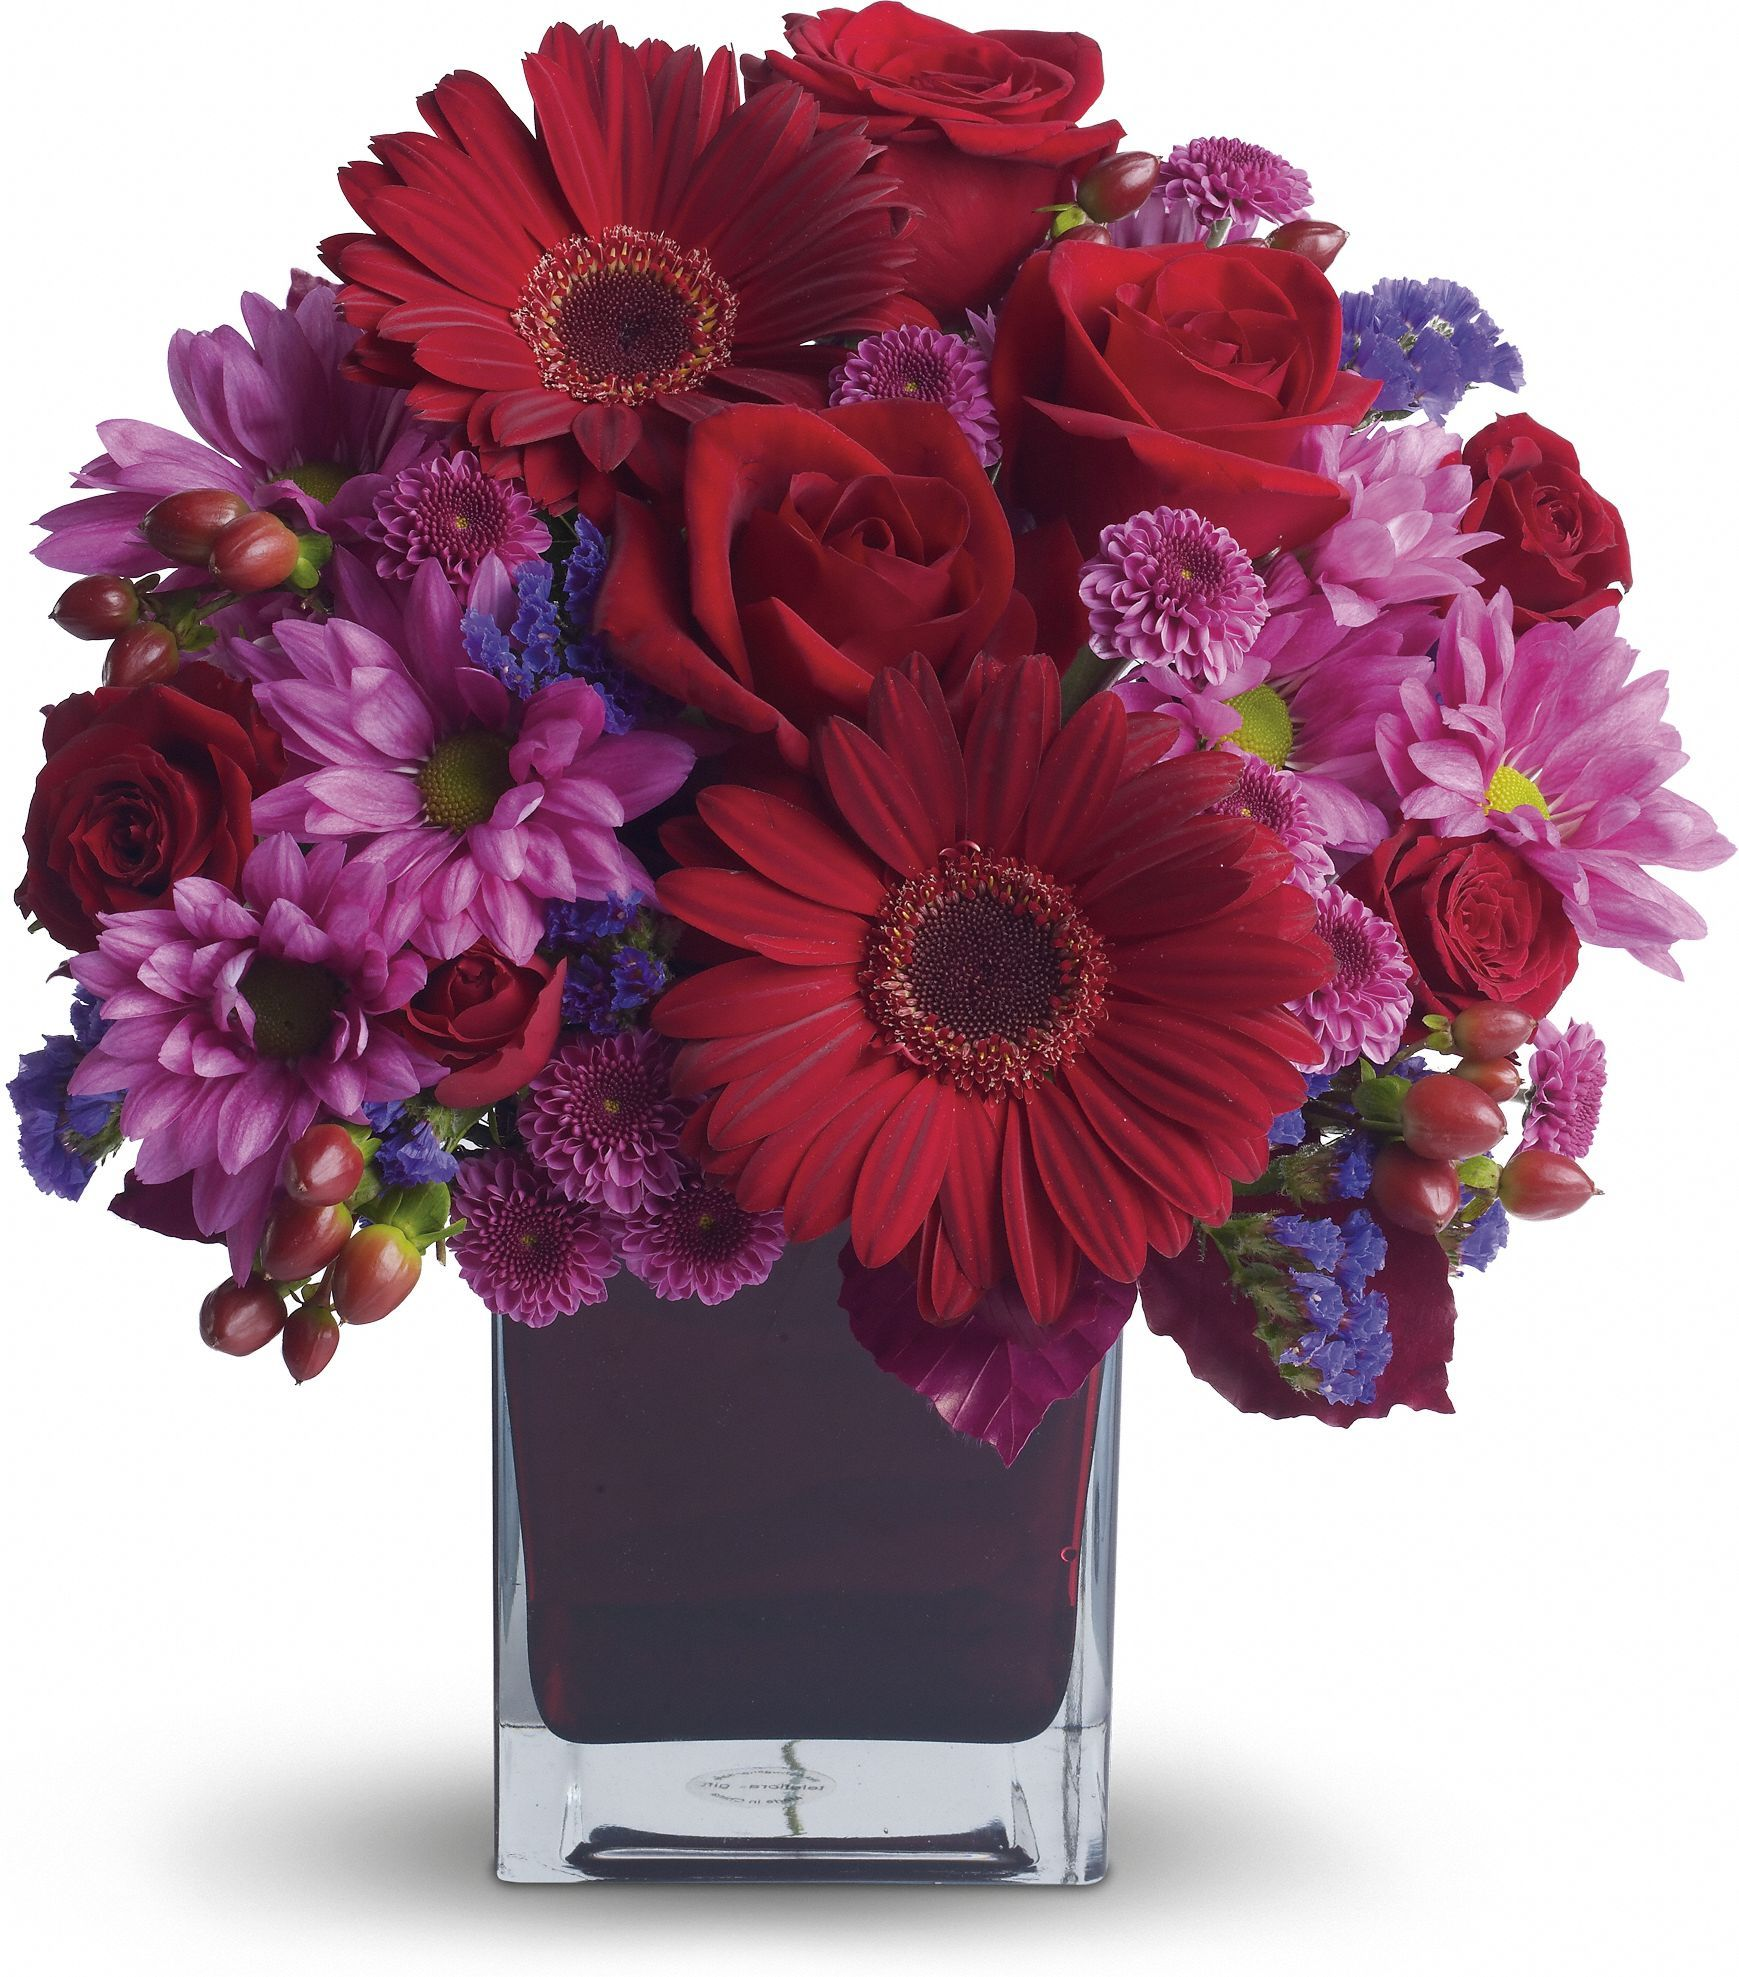 It's My Party by Teleflora Save 25 on this bouquet and